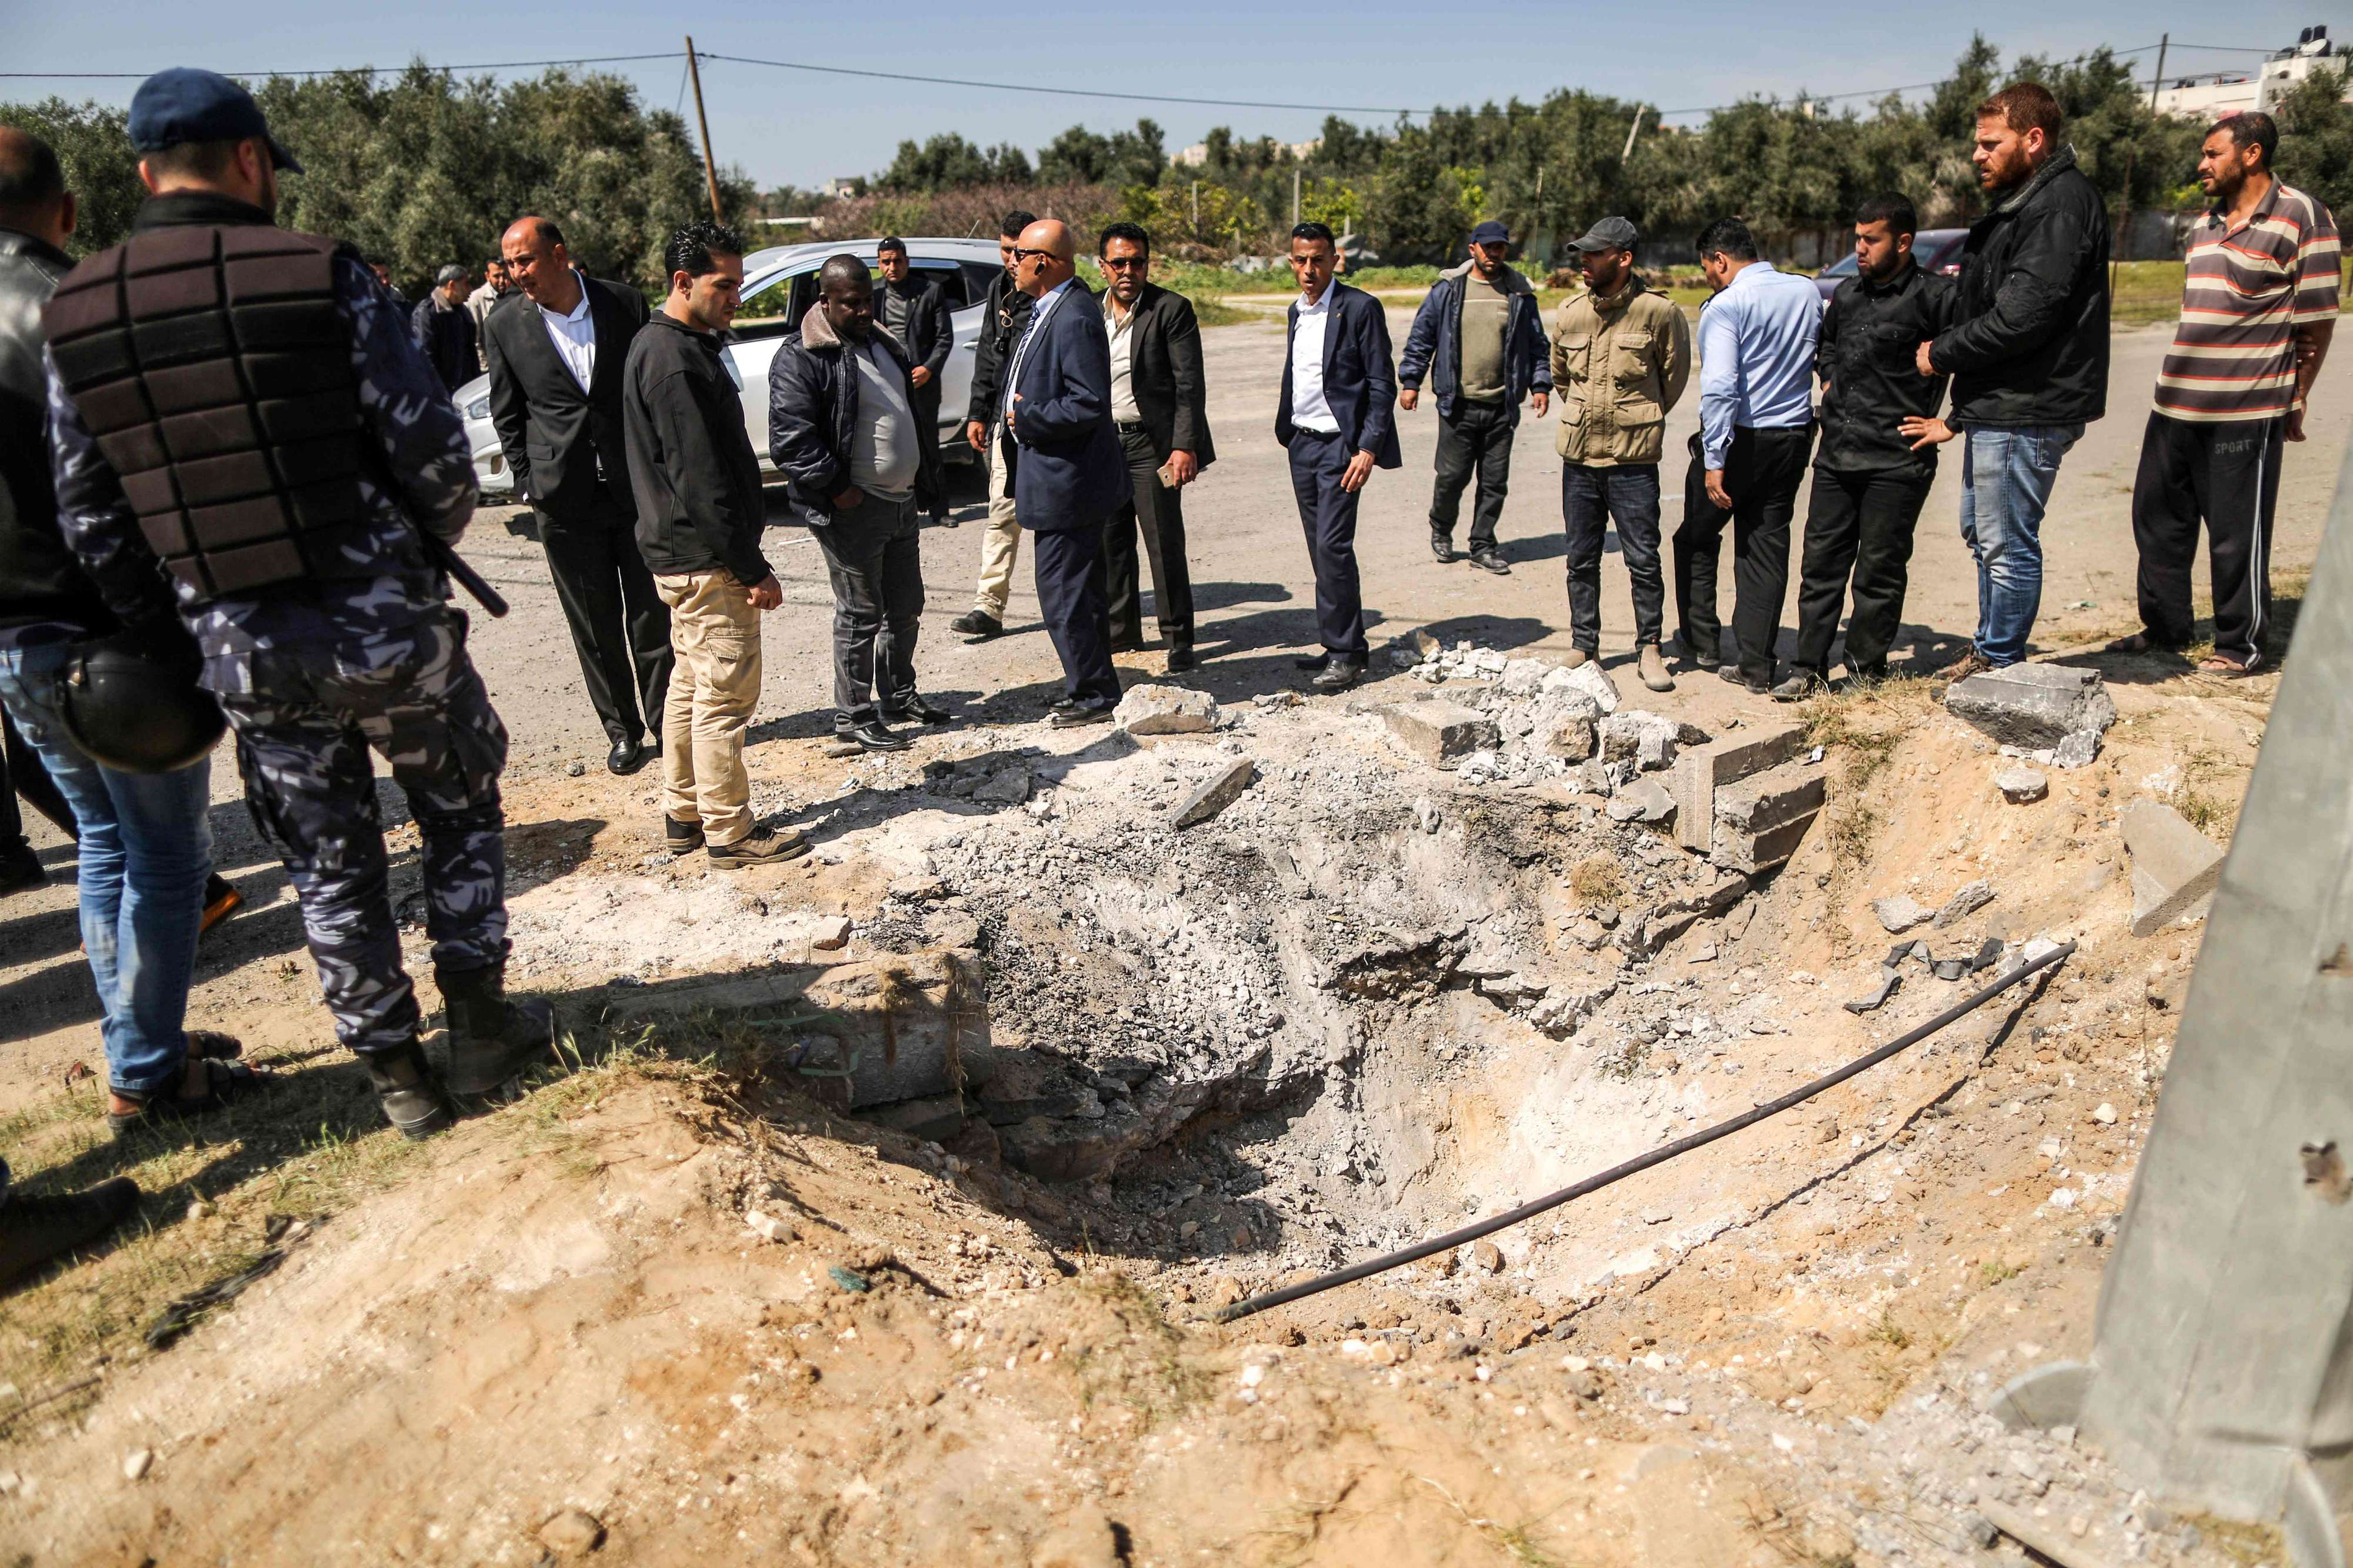 Members of the Hamas security forces inspect the crater at the site of an explosion that targeted the convoy of Palestinian Prime Minister Rami Hamdallah during his visit to the Gaza Strip, on March 13. (AFP)